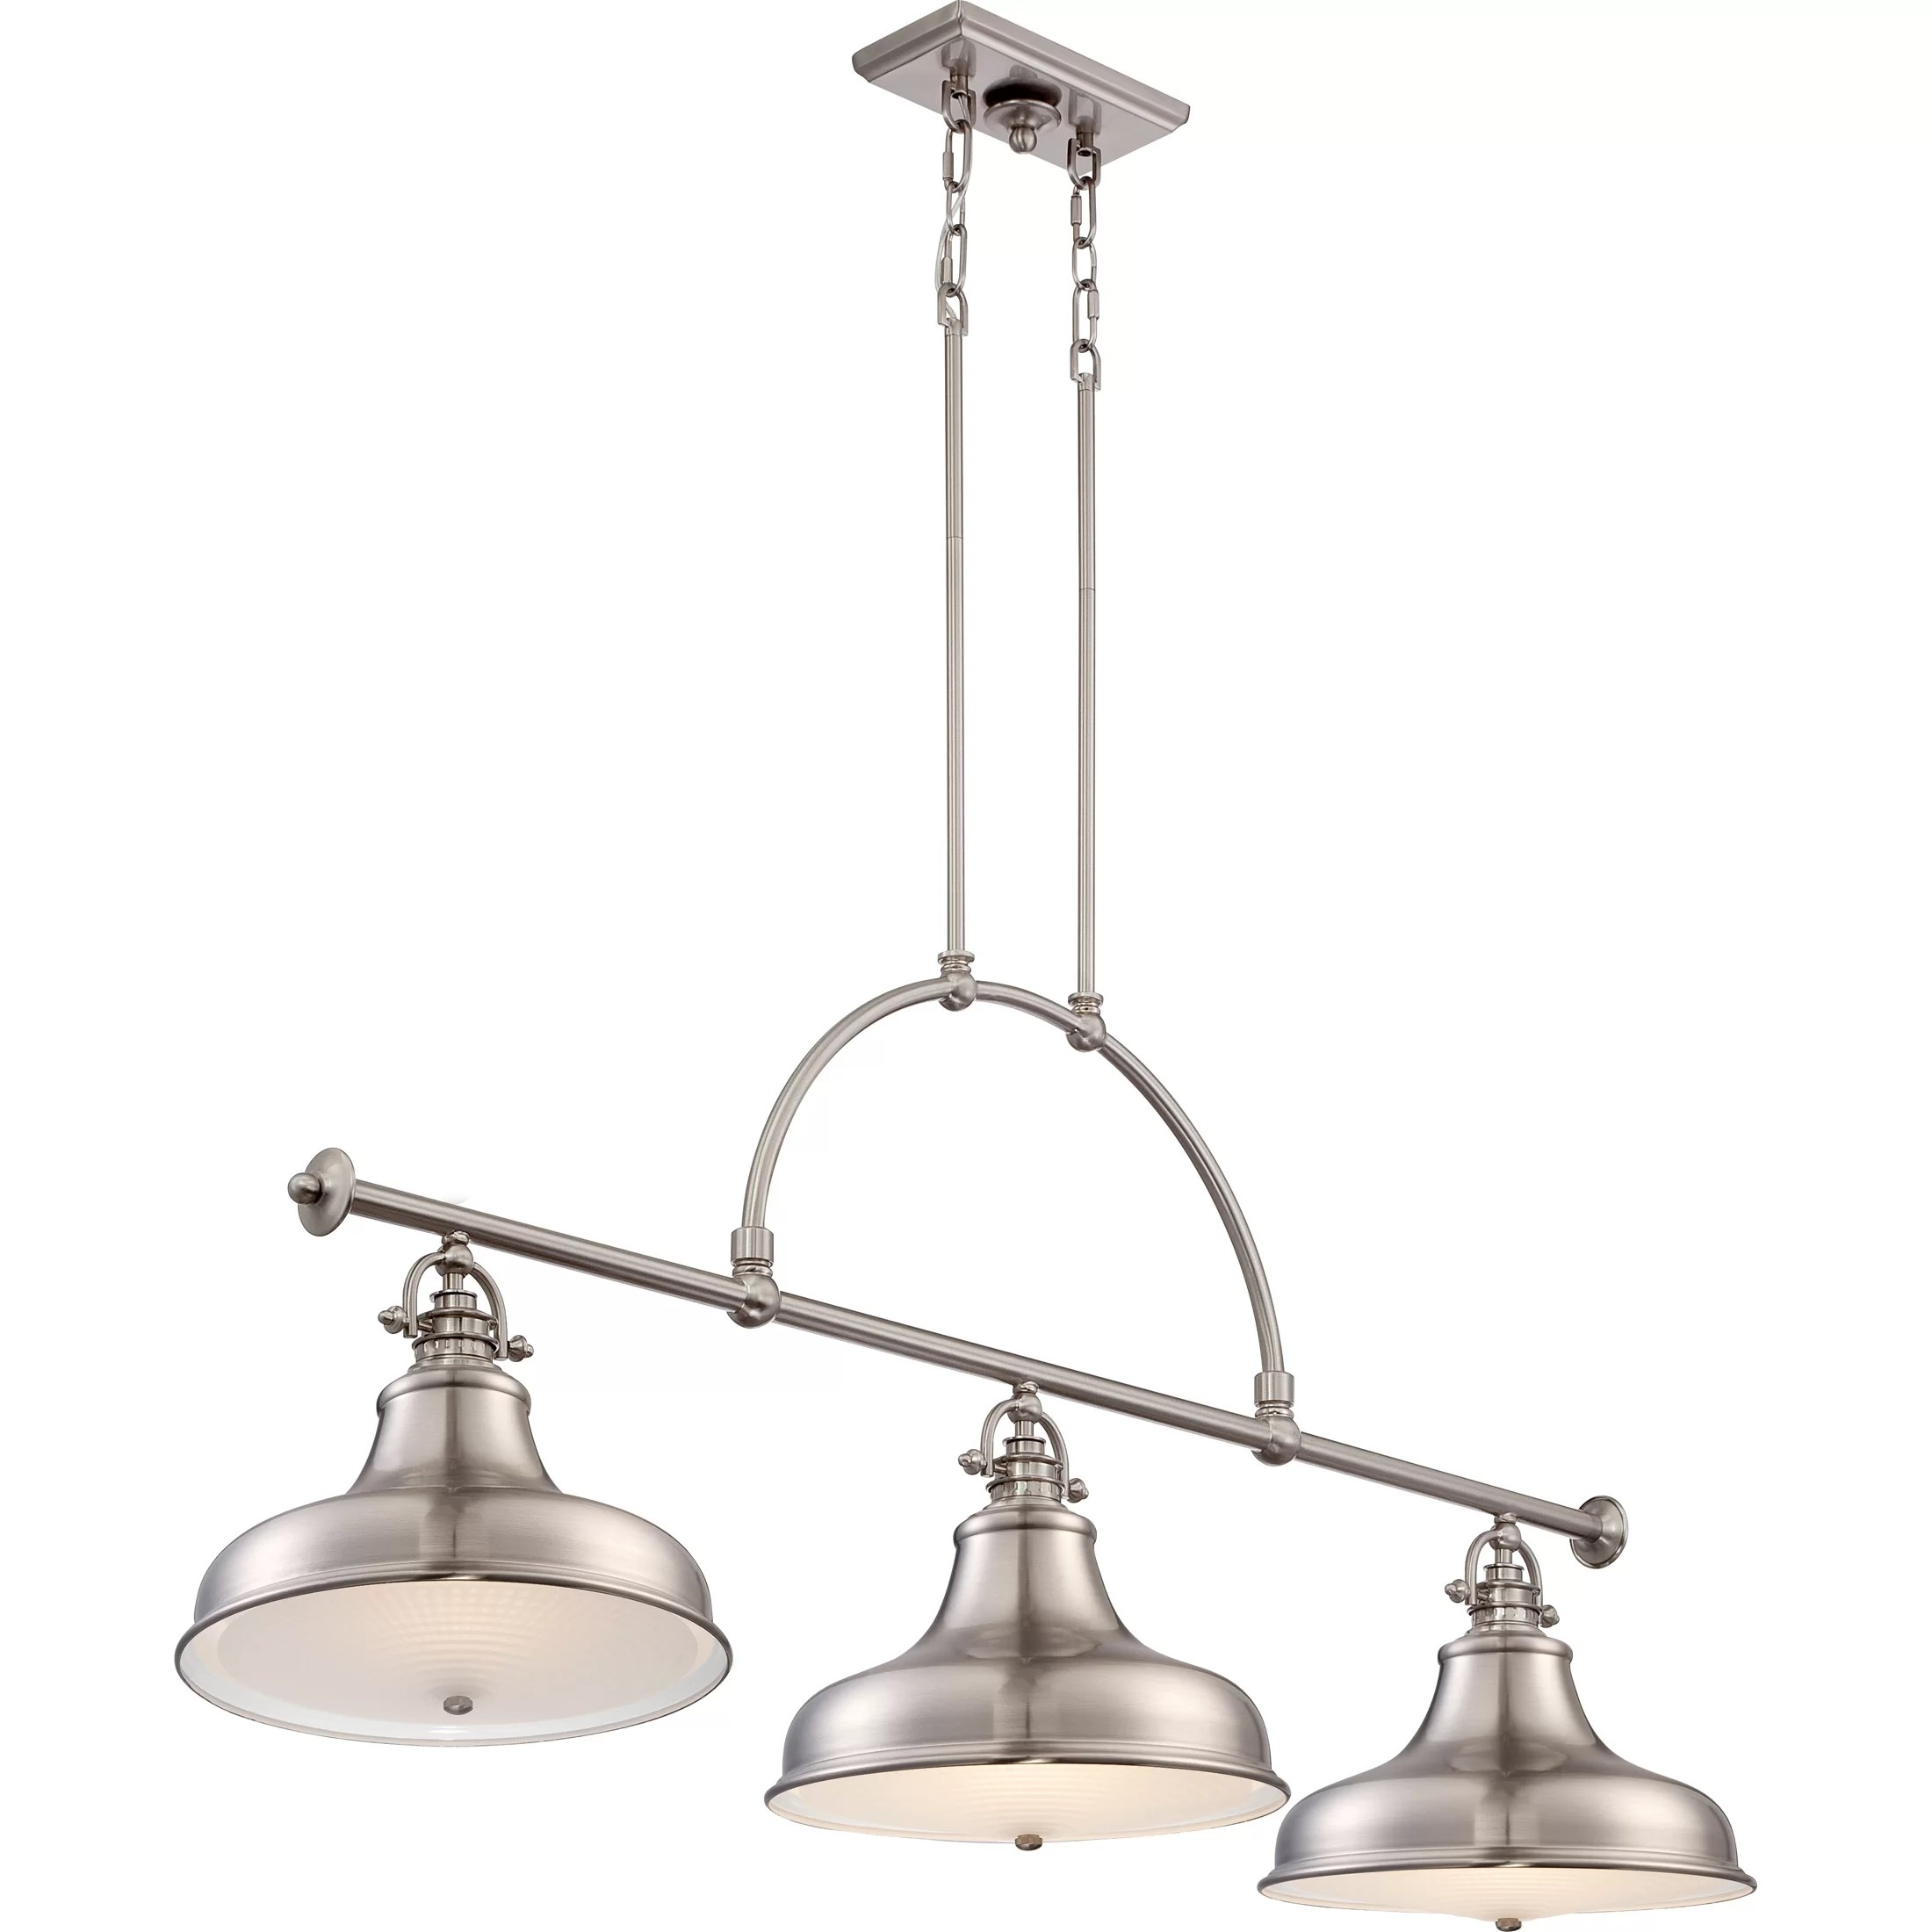 Pendant Island Lights Trent Austin Design Cetona 3 Light Kitchen Island Pendant